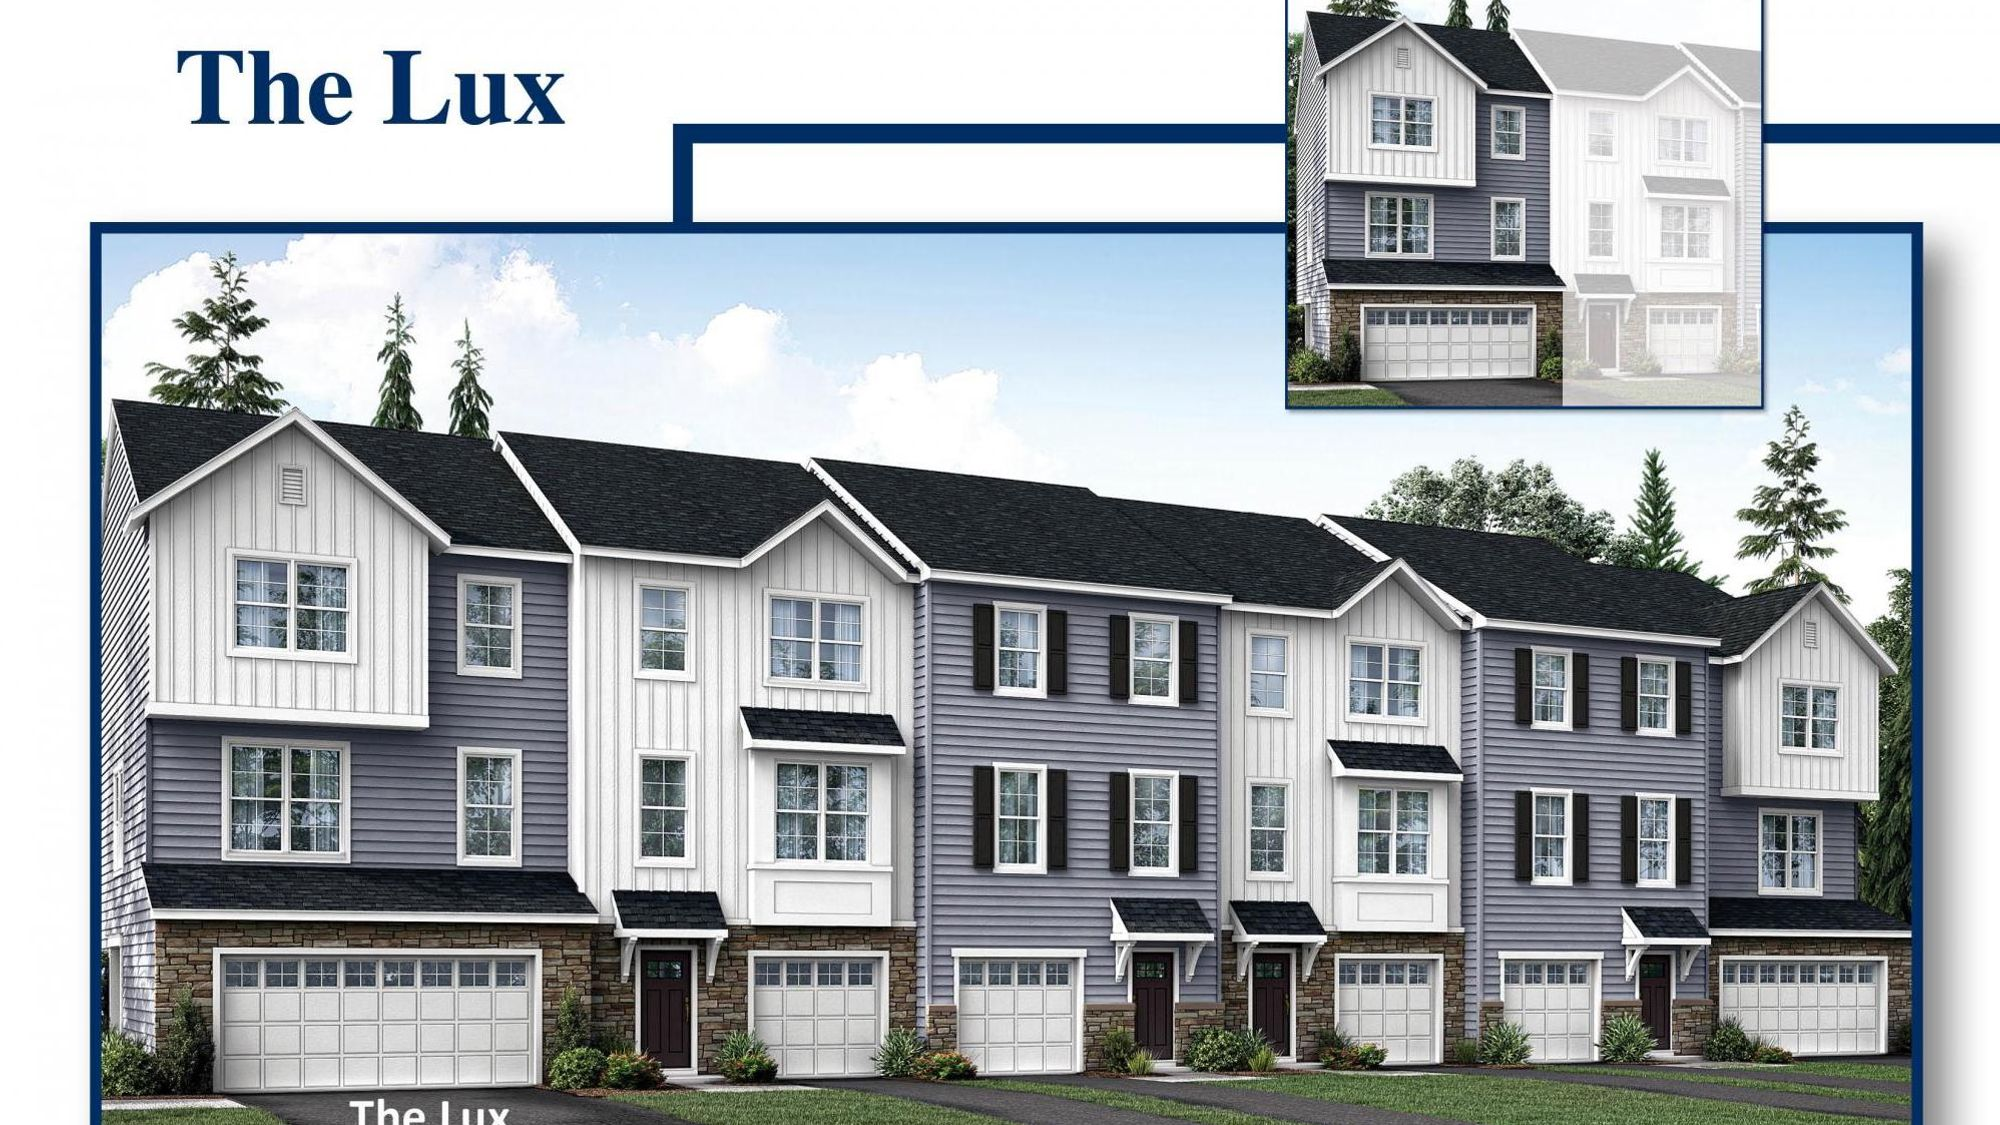 Large New Townhome in South Jersey with two car garage, end unit, stone accents, gray siding, plus white siding.